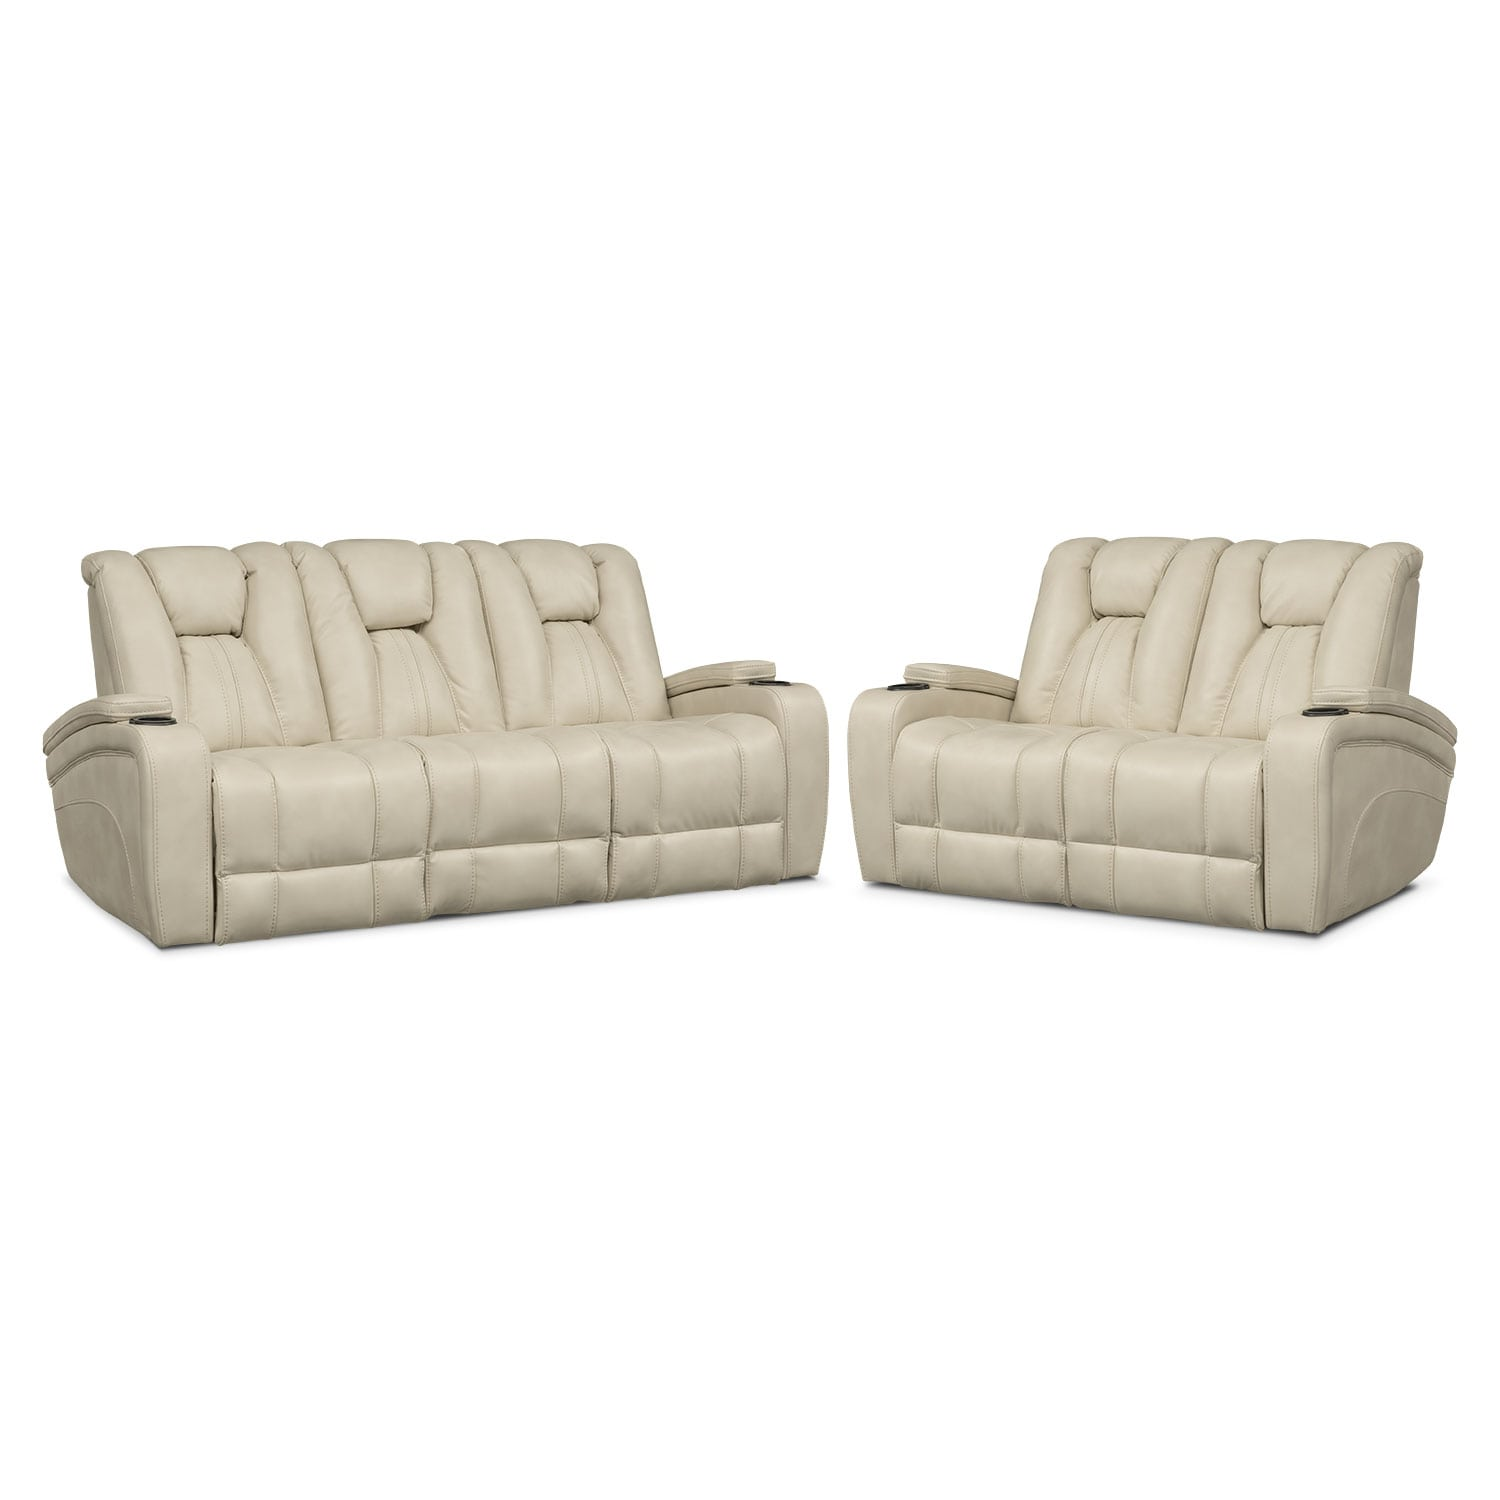 Living Room Furniture - Pulsar Dual Power Reclining Sofa and Dual Power Reclining Loveseat Set - Cream